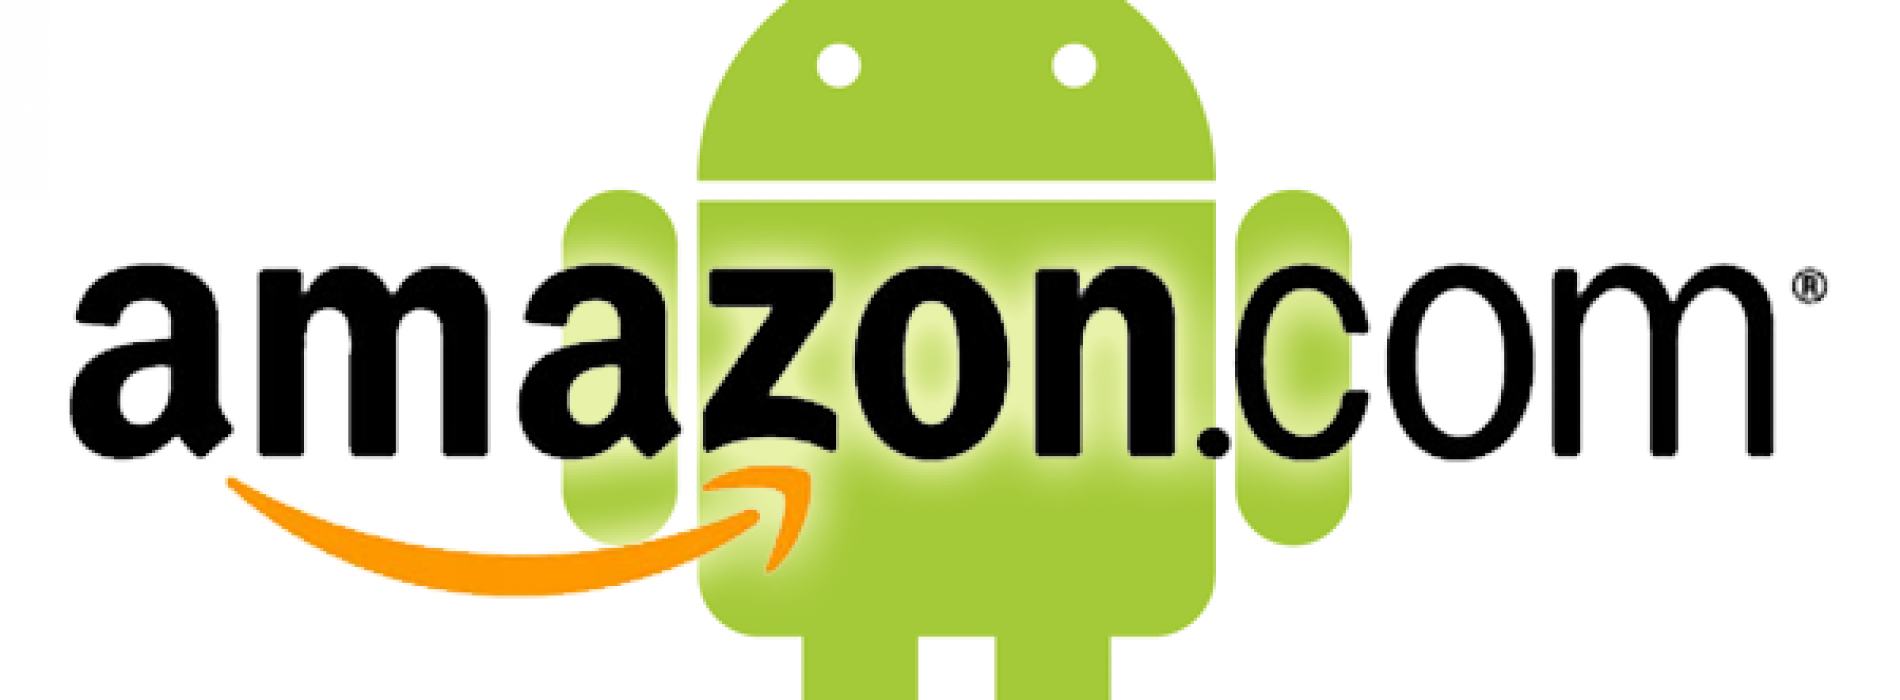 Amazon Appstore downloads up 500 percent over previous year